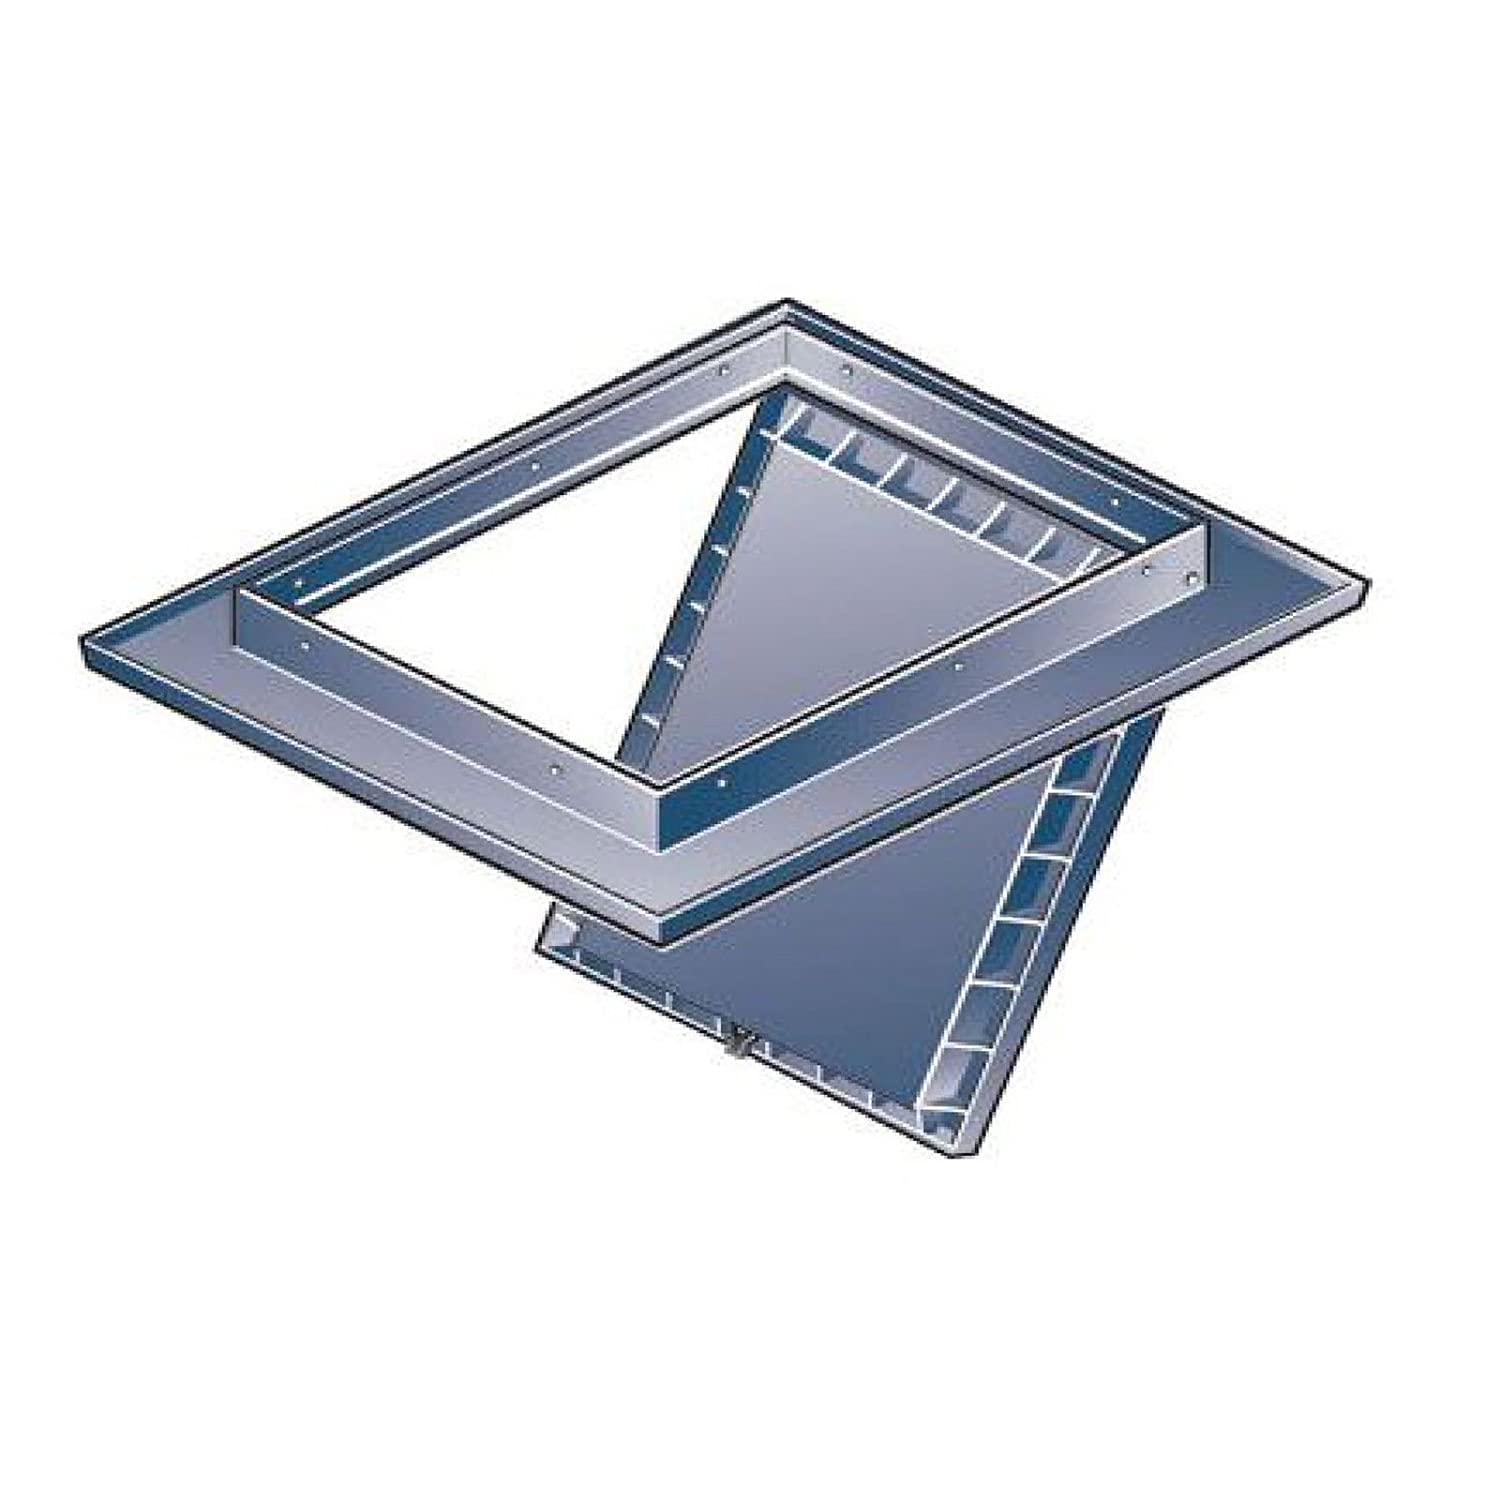 White Loft Trap Door with Opening Pole Hinged Drop Down Insulated Hatch Access Door Attic by SmartHome